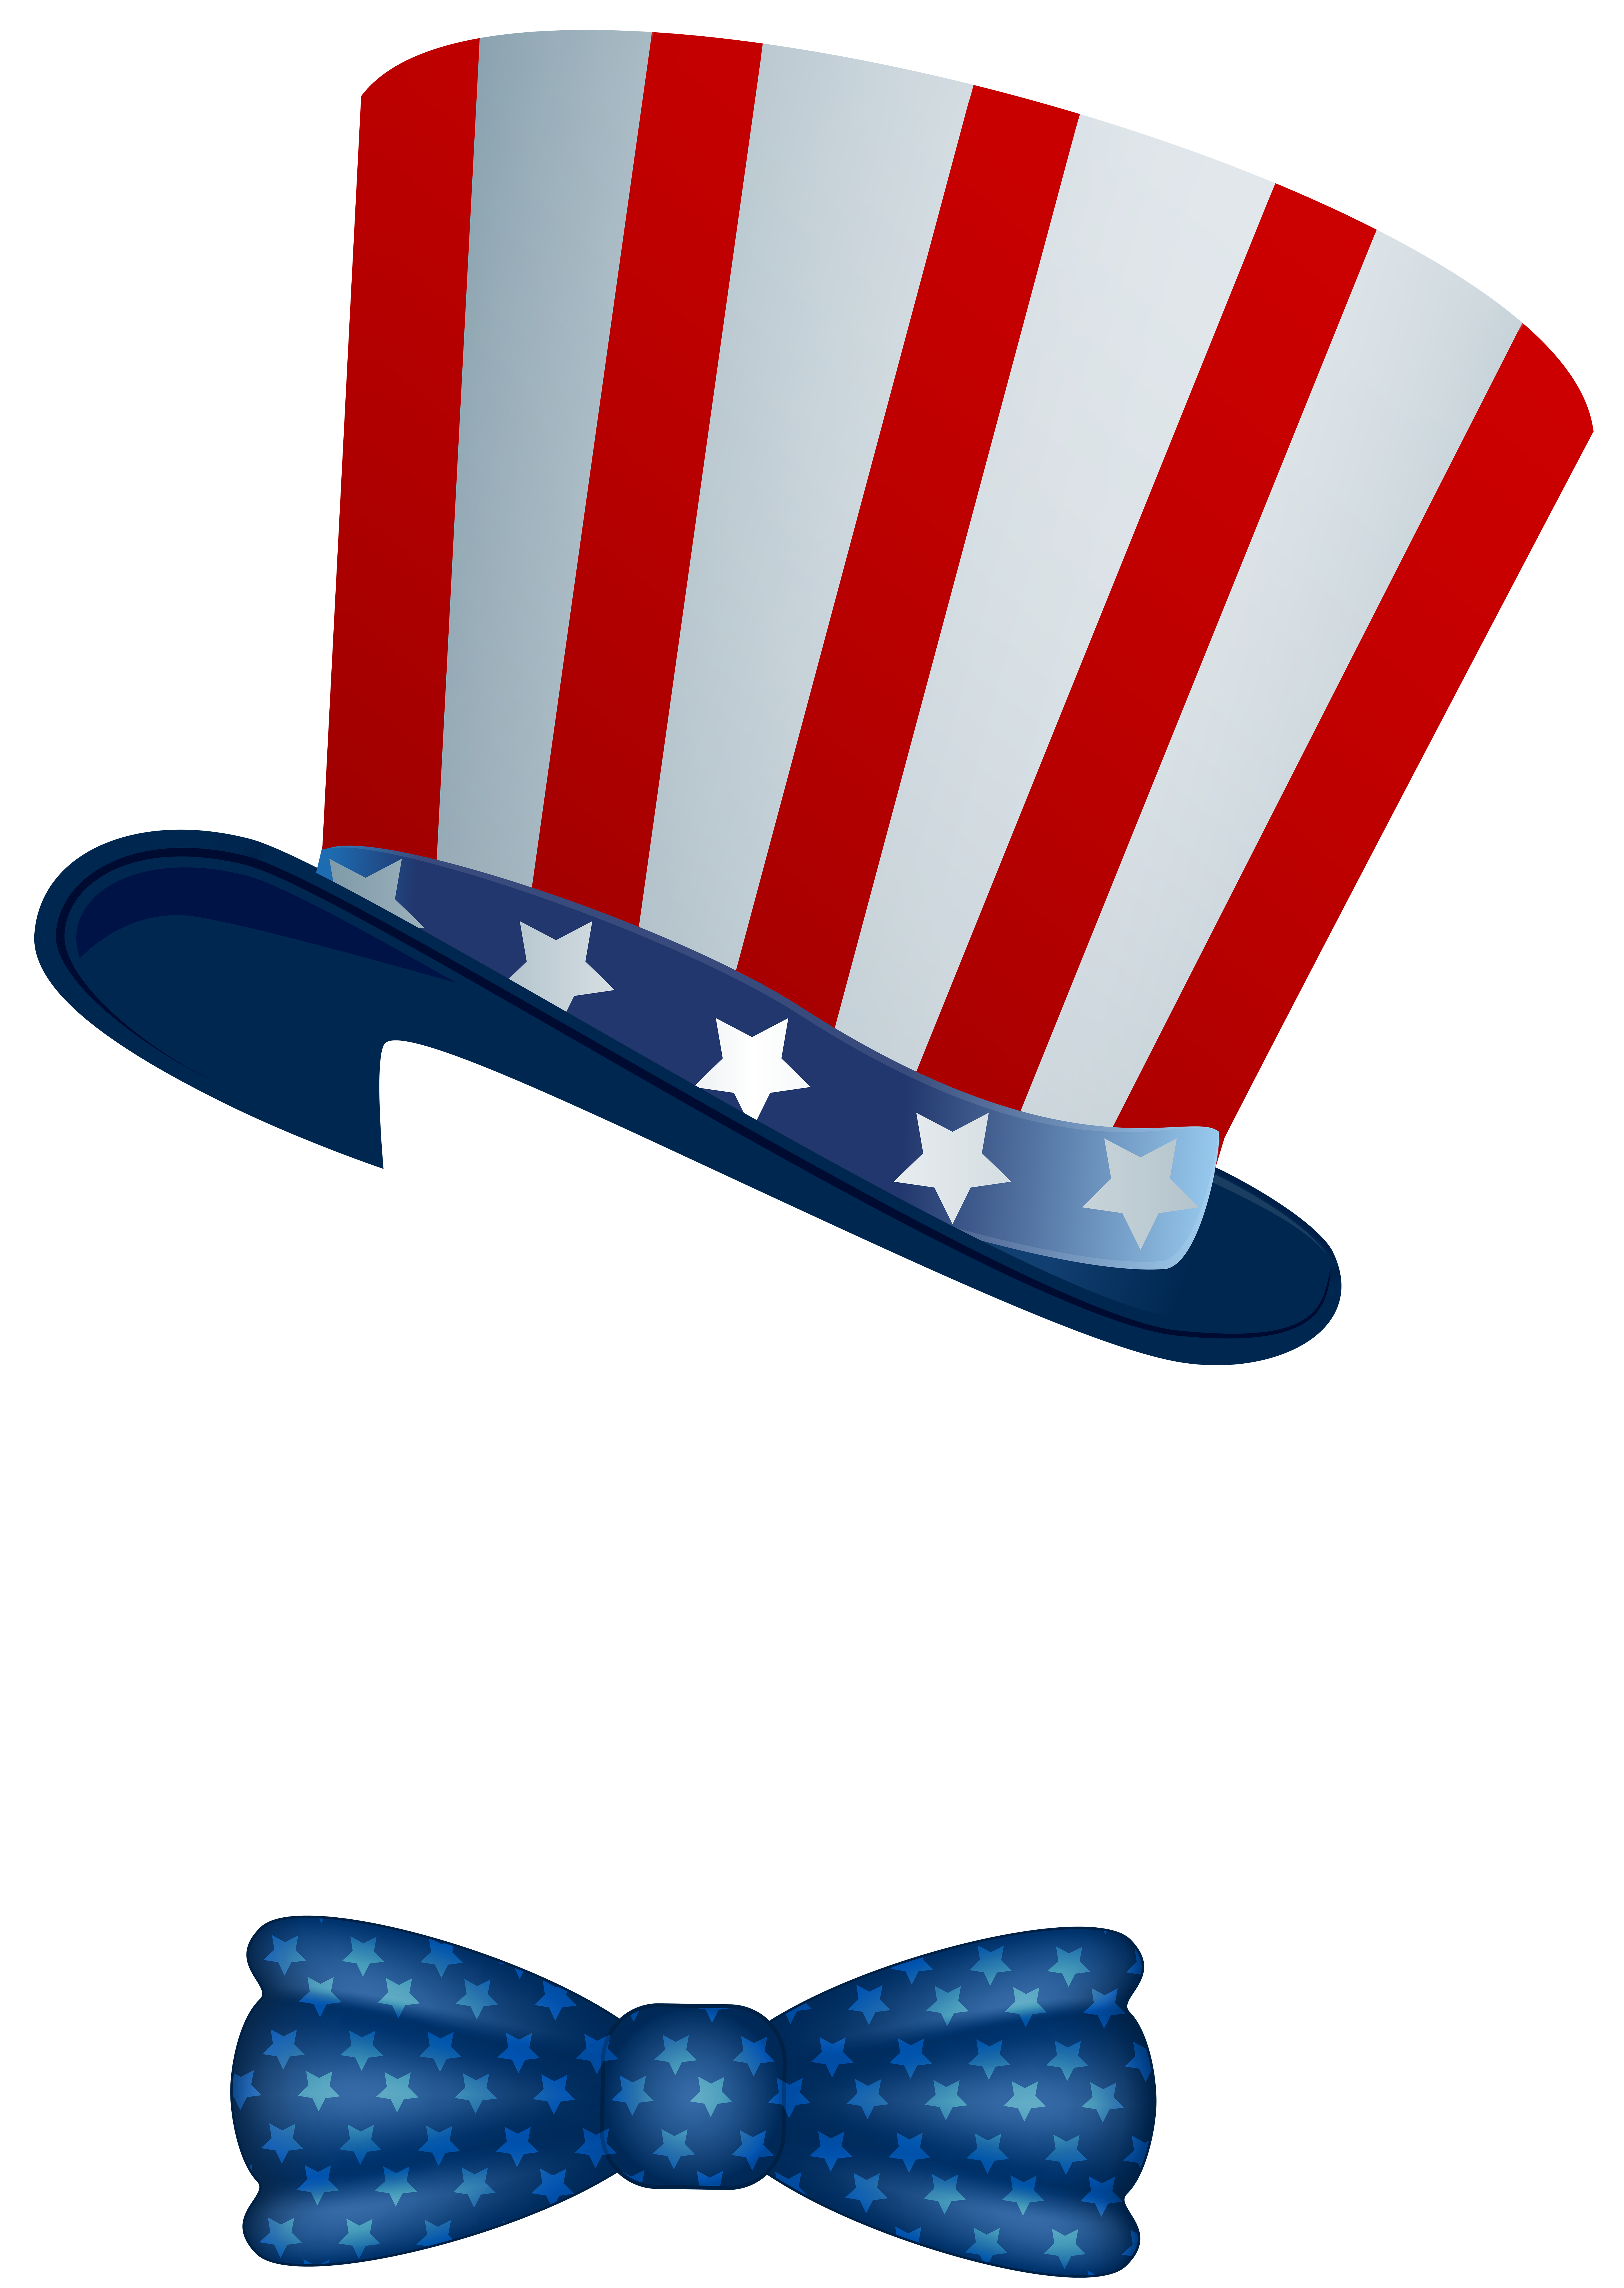 American hat and bowtie. Clipart bow 4th july